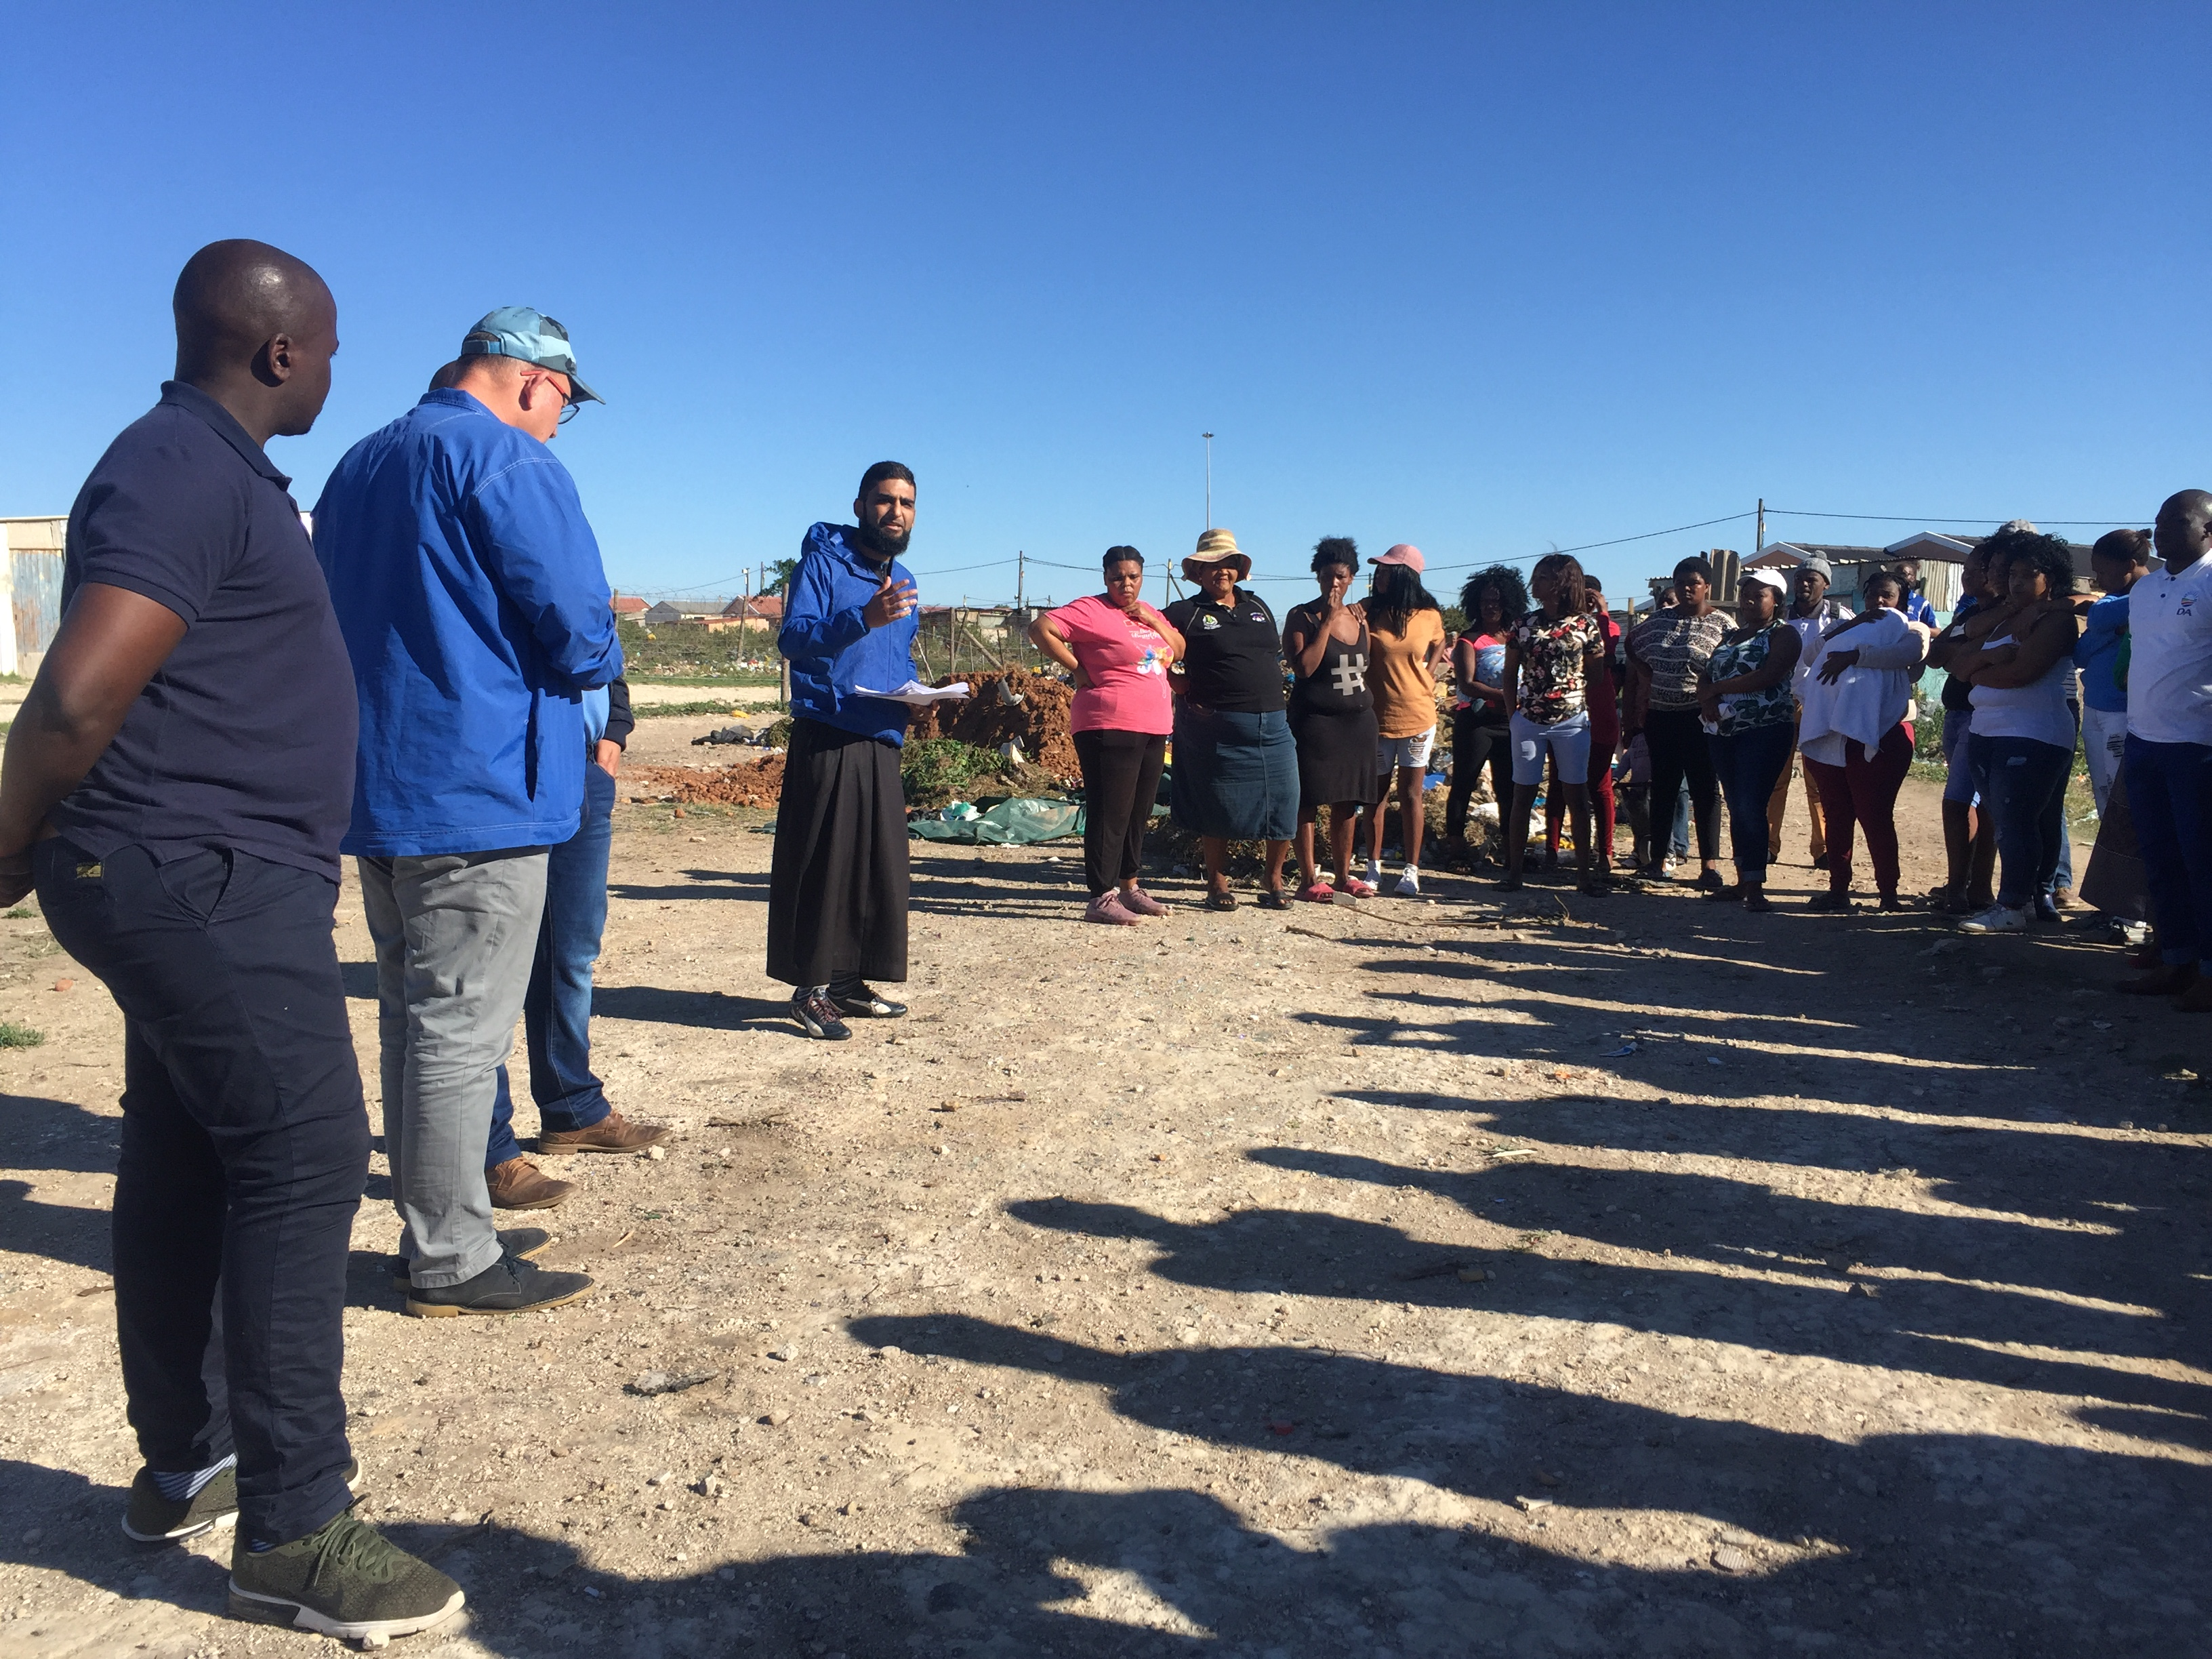 Dirty communities are robbing NMB residents of their dignity and health